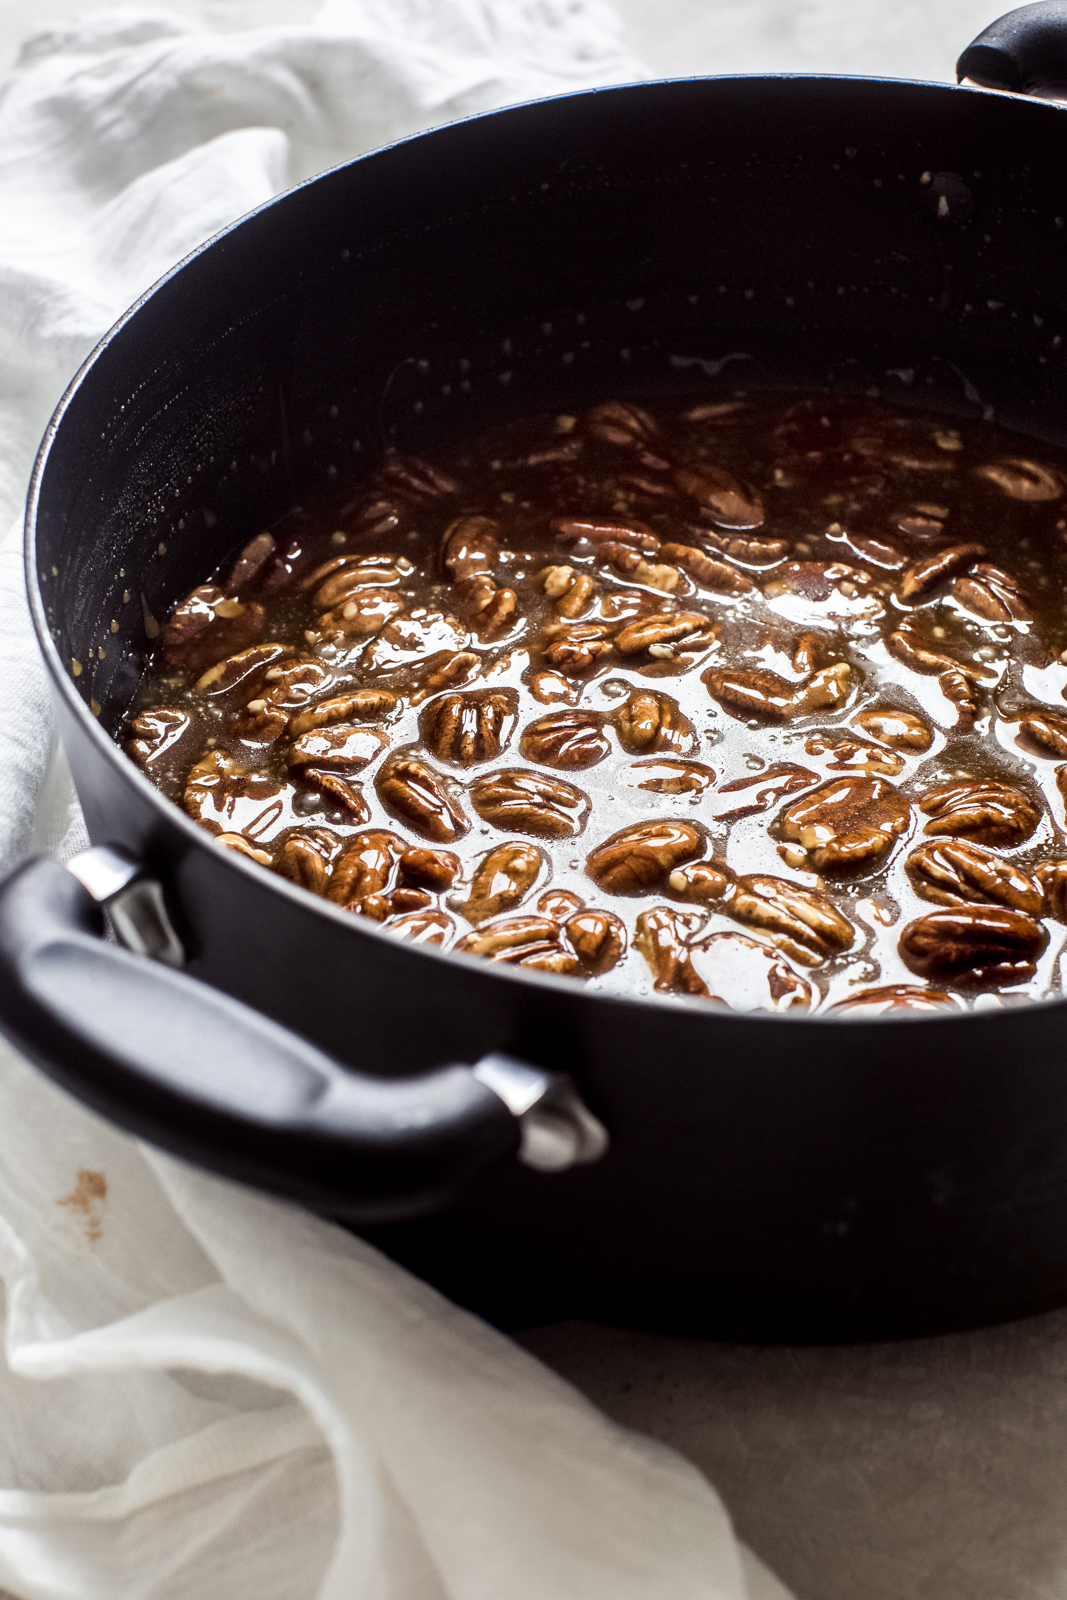 prepared pecan pie mixture in black sauce pot